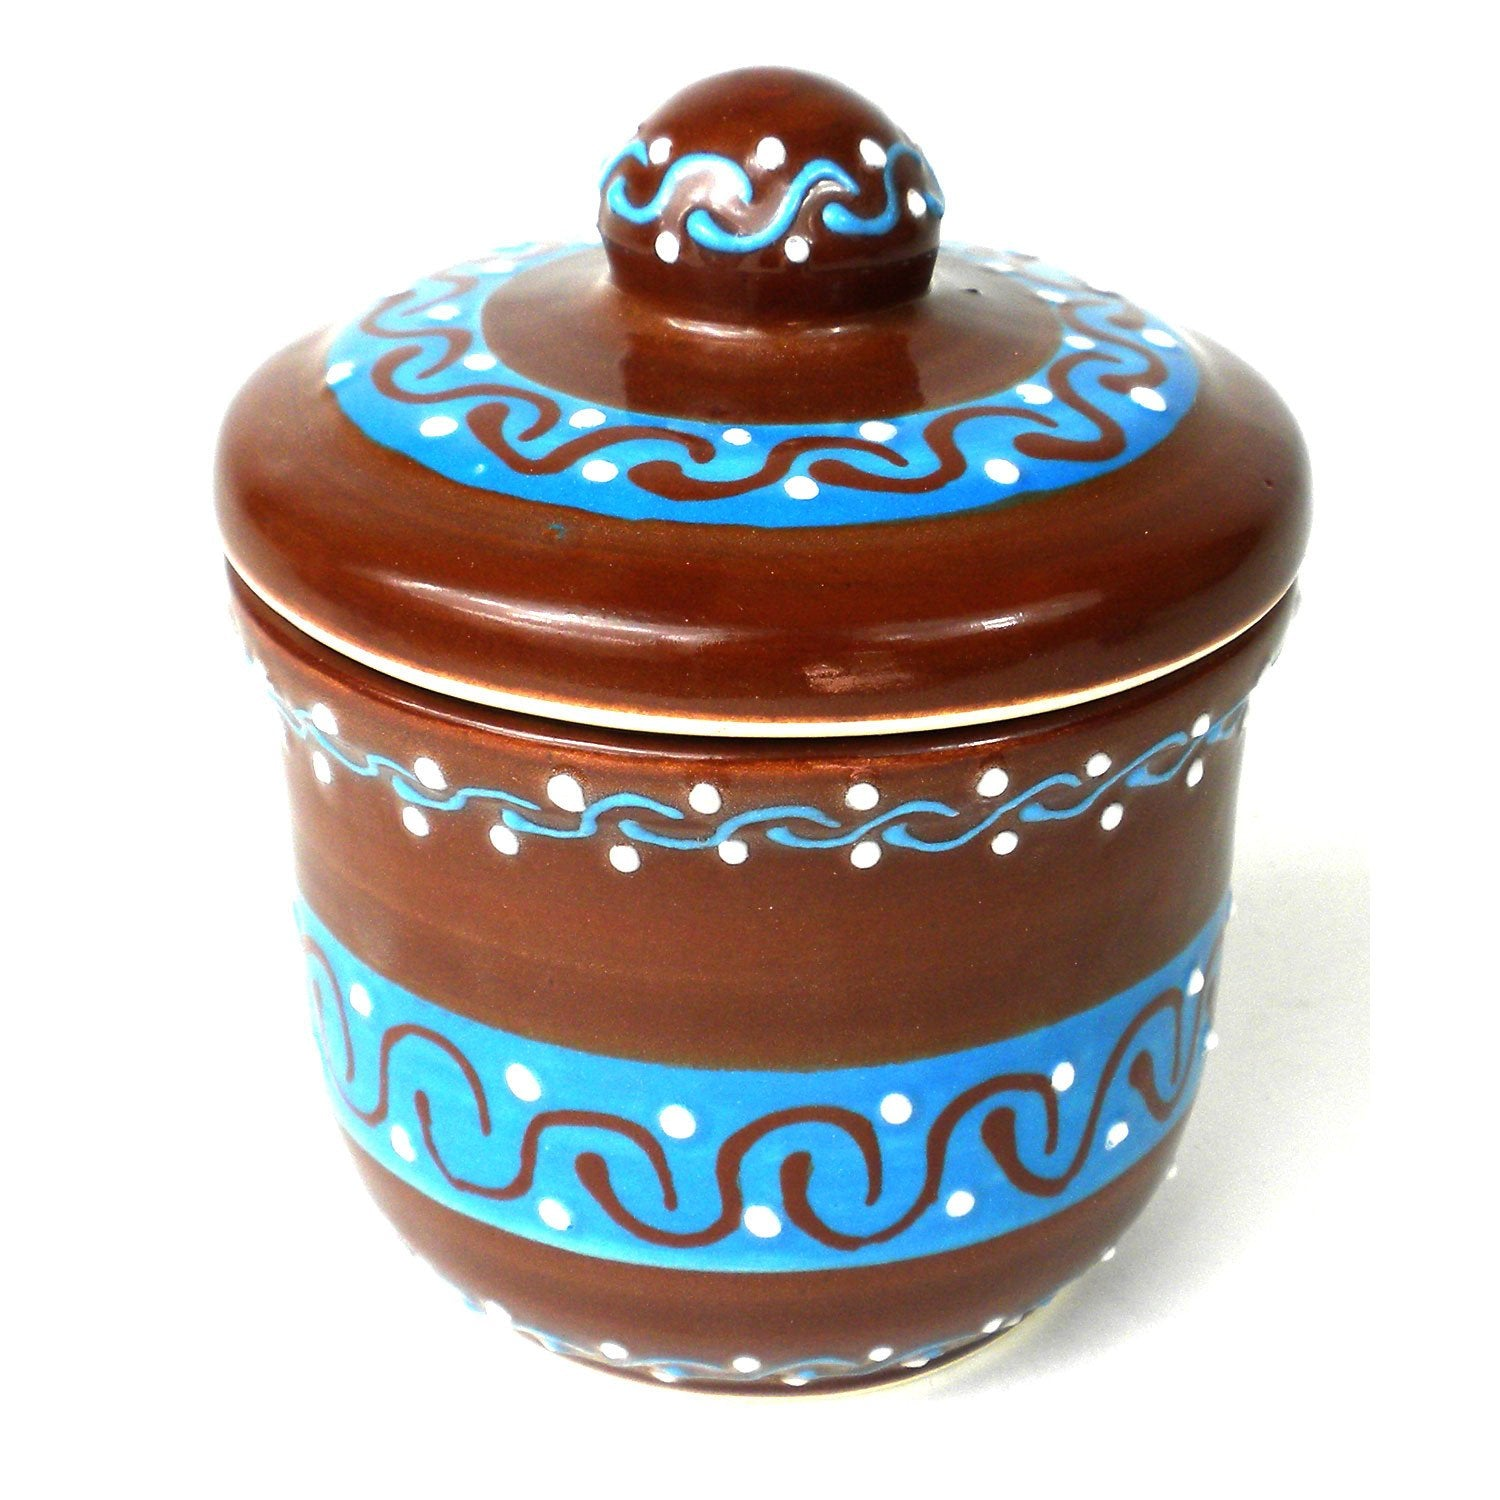 Encantada Handmade Pottery Sugar Bowl, Chocolate